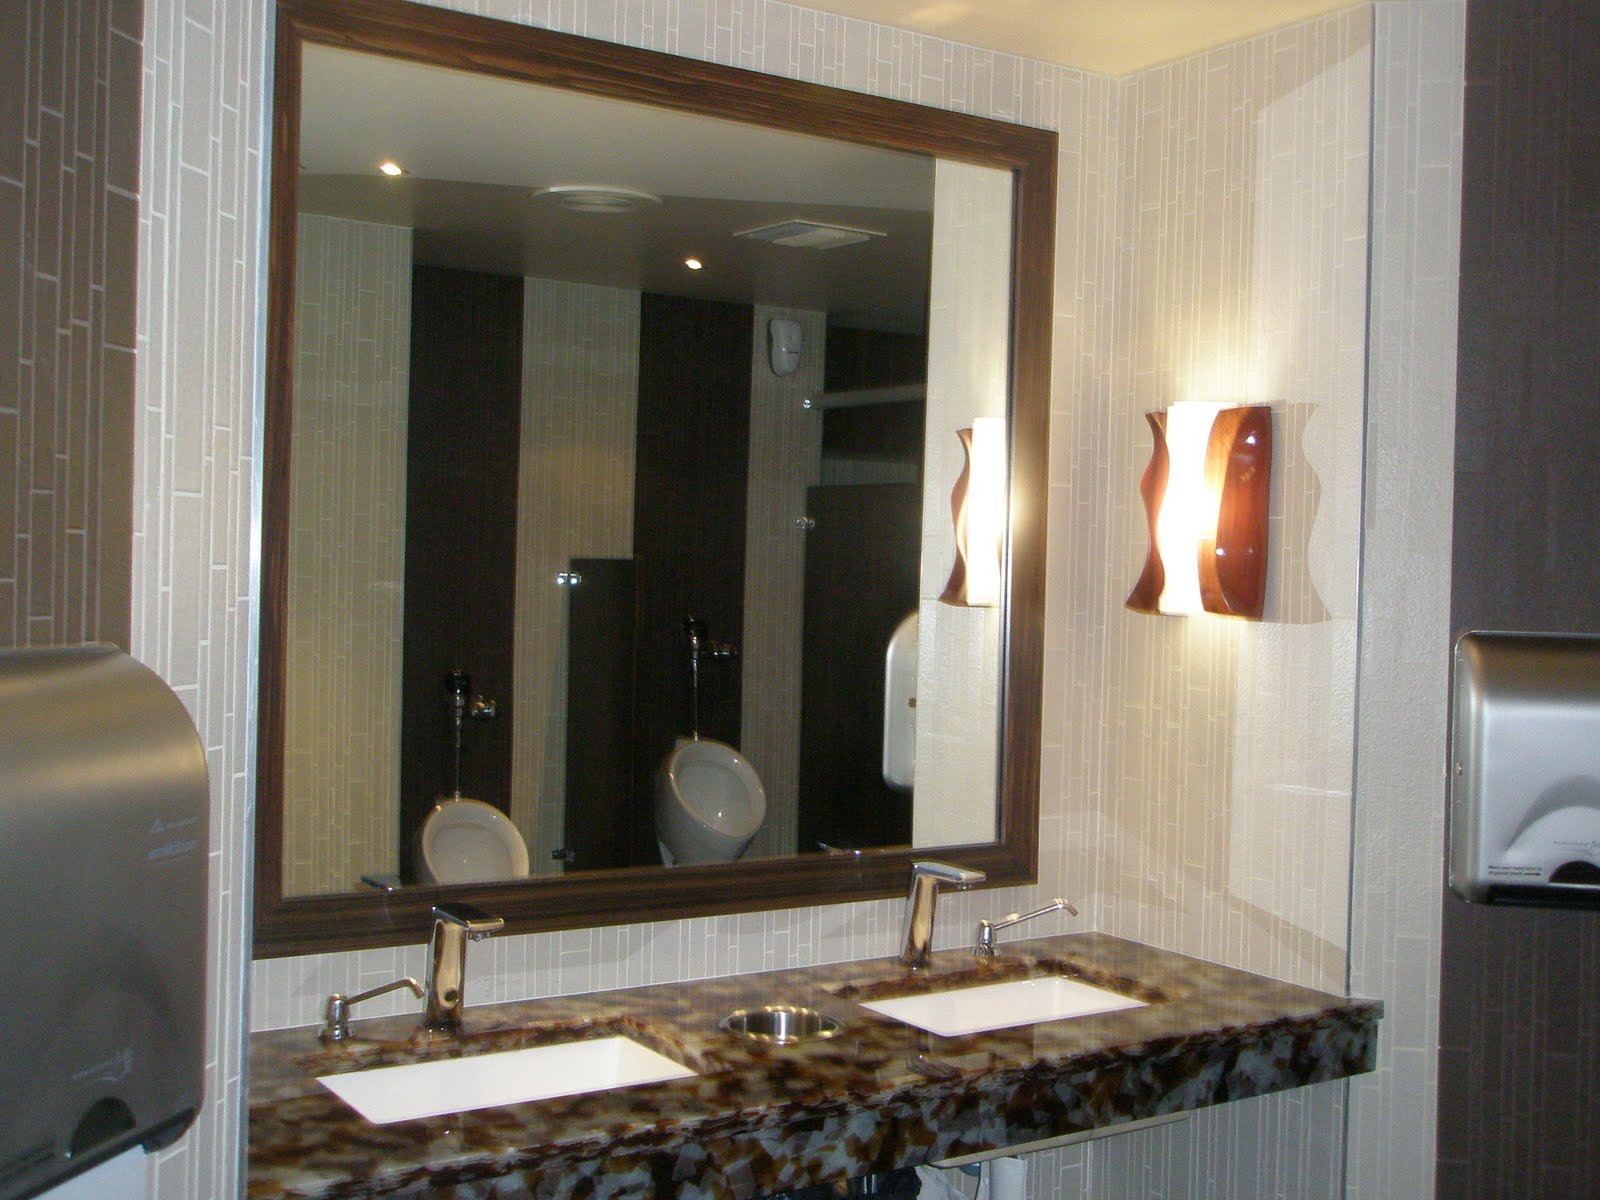 17 Pacifica Del Mar Bathroom.JPG